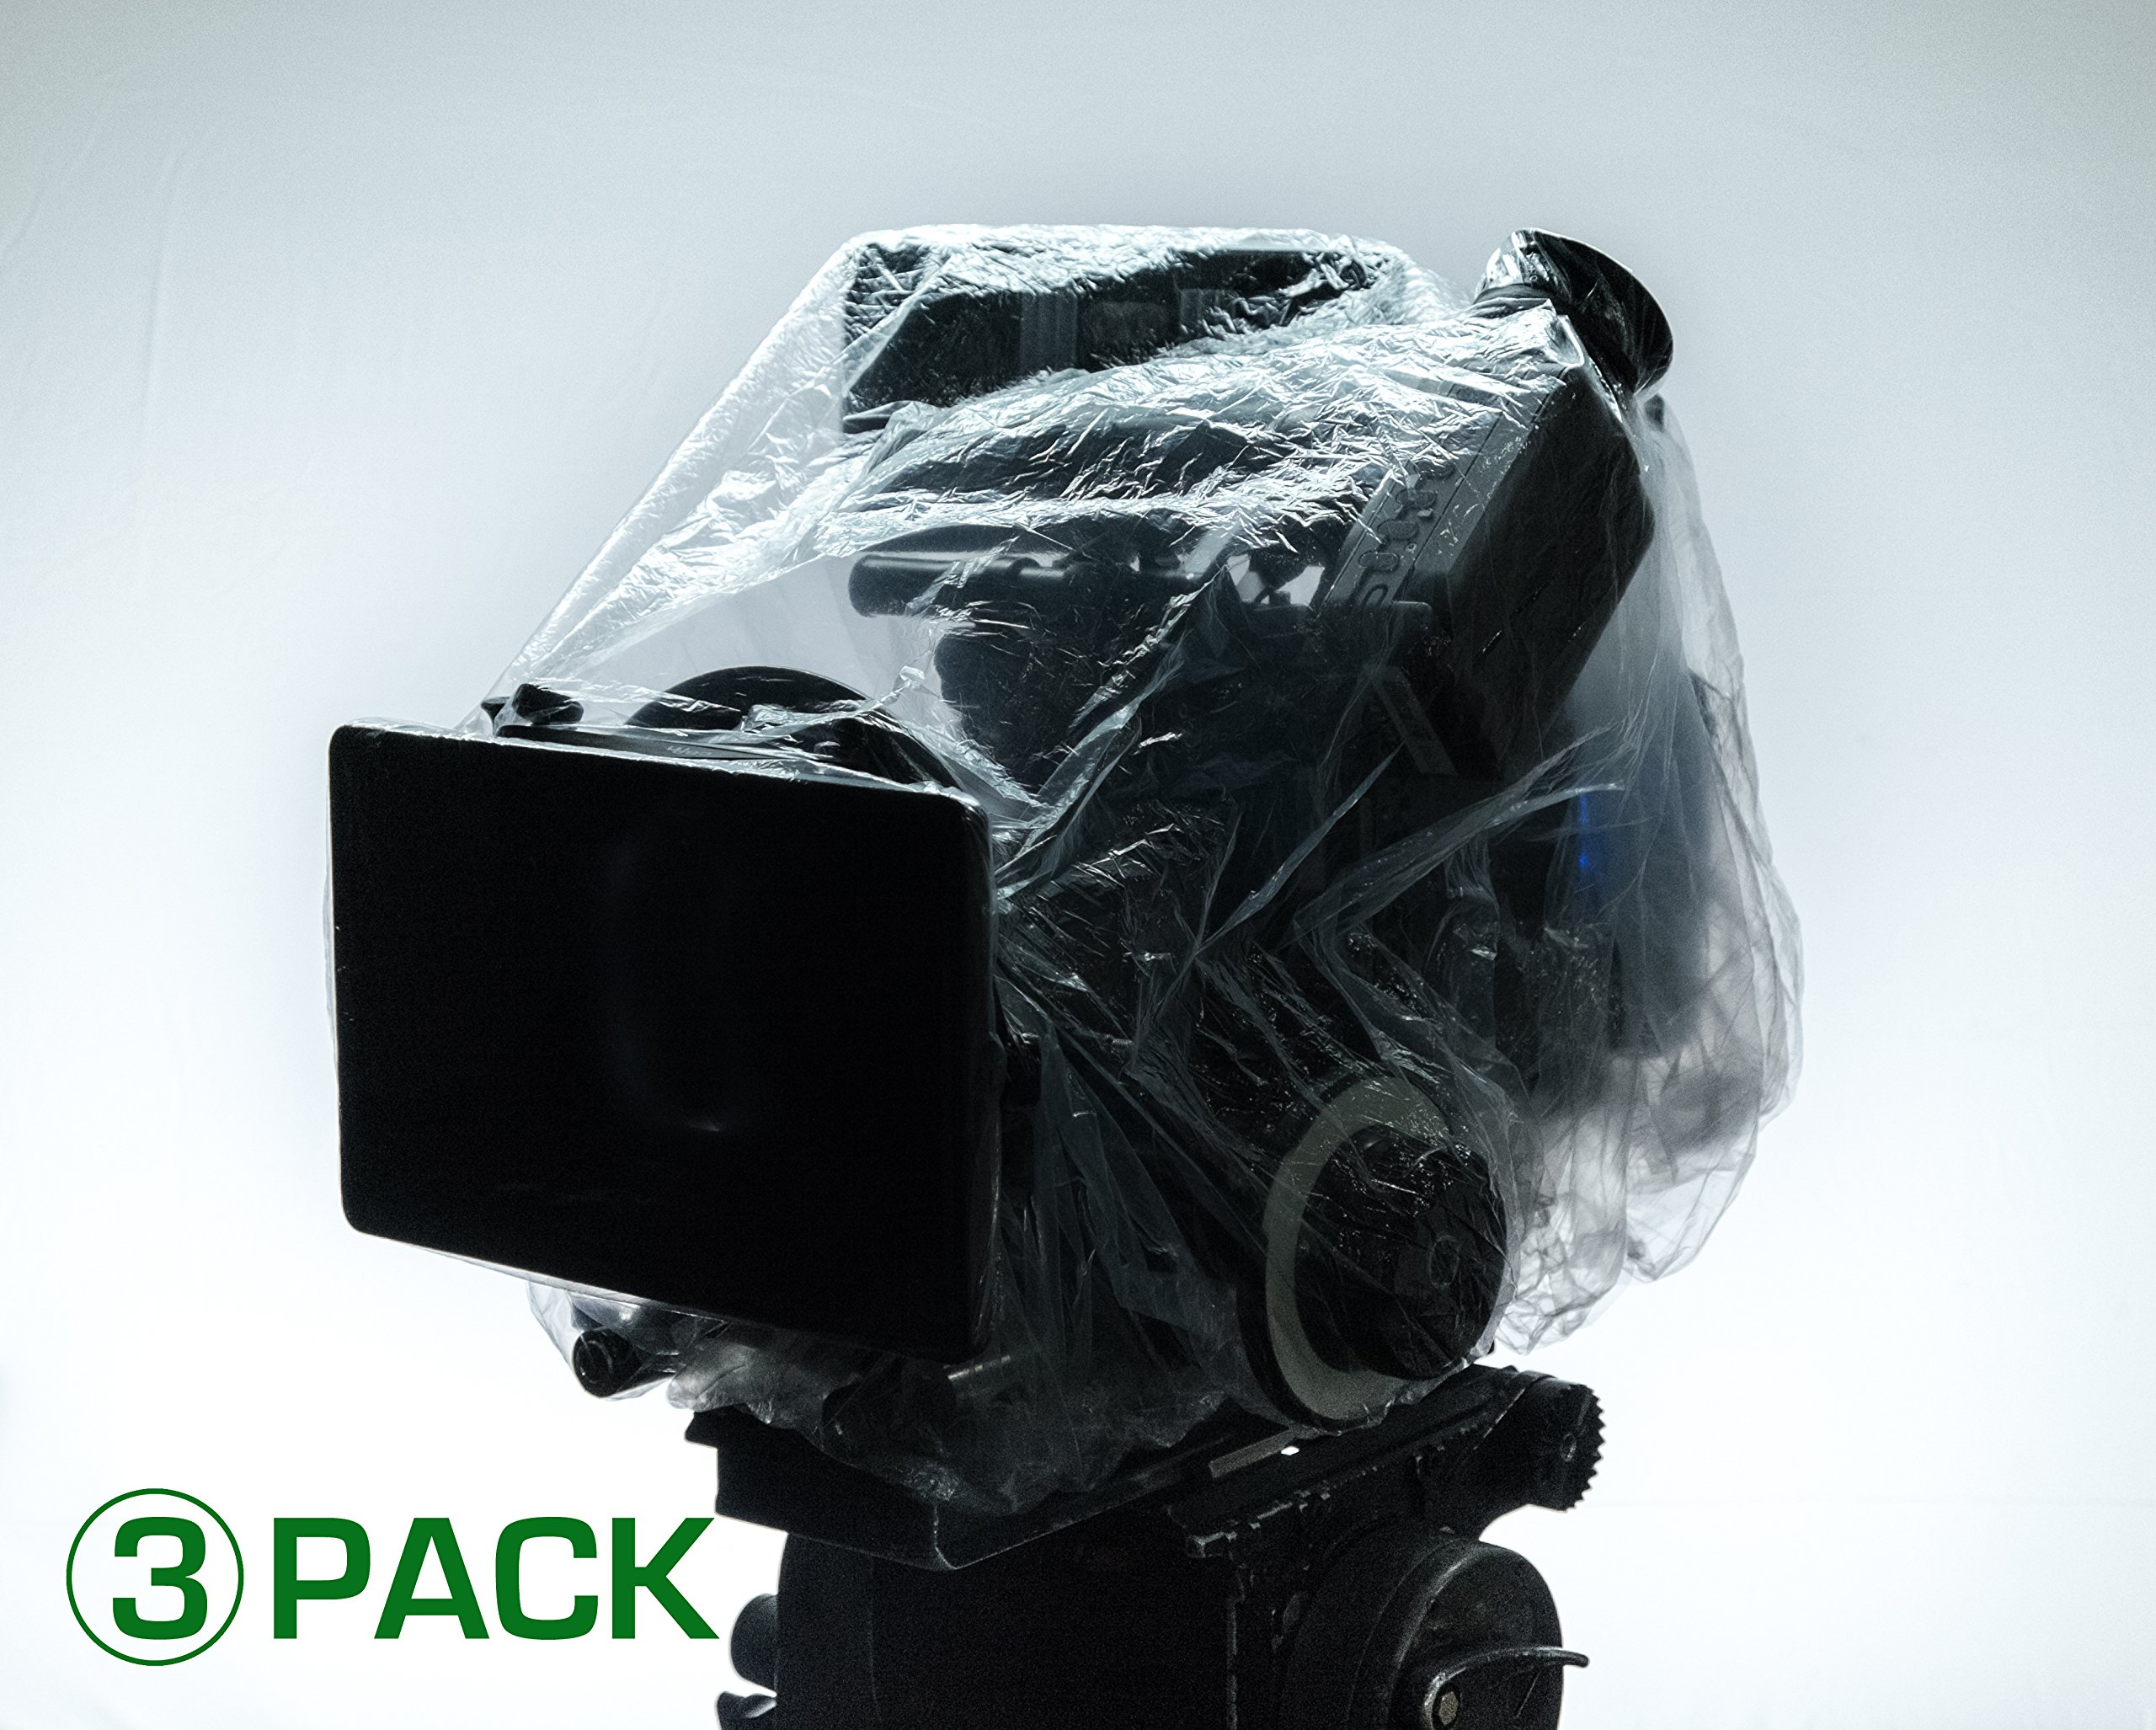 3 PACK CAP IT! COVERS (AKS) CAMERA & ELECTRONICS PROTECTION PERFECT FOR ARRI, RED, SONY, PANASONIC, PANAVISION, BLACK MAGIC, STEADICAM, GIMBLE RIGS, KIT BAGS MONITORS AND MORE